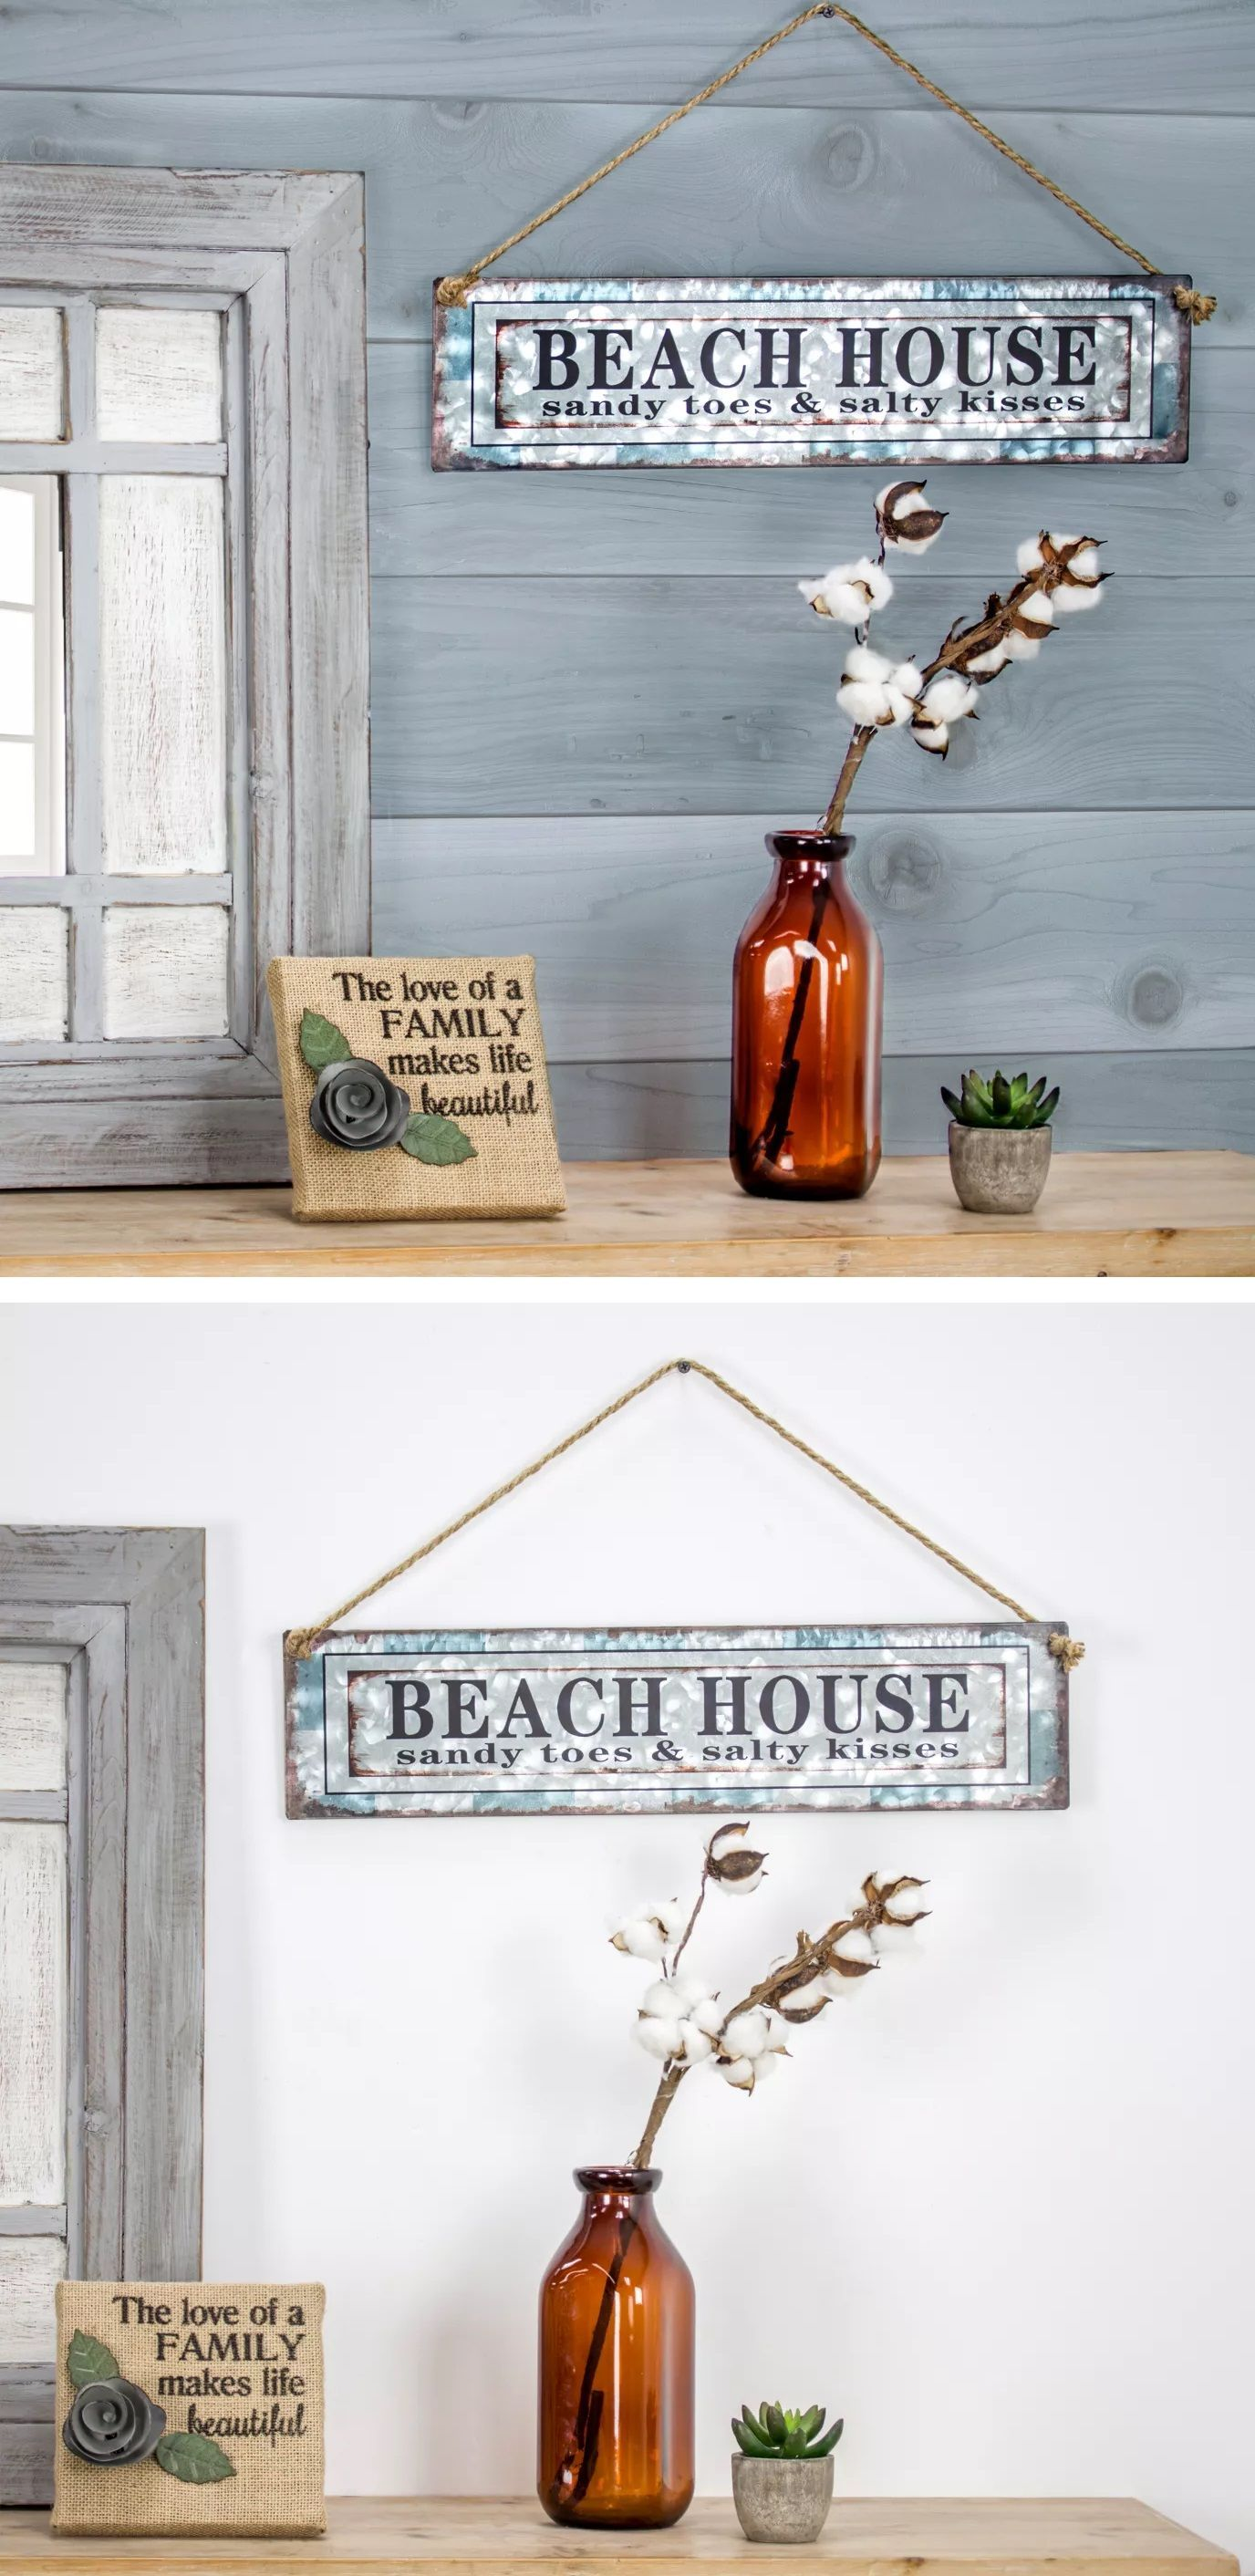 Beach House Galvanized Metal With Rope Hanger Wall Decor E2 Concepts Affiliate Pin With Images Beach Wall Decor Beach Theme Decor Galvanized Decor